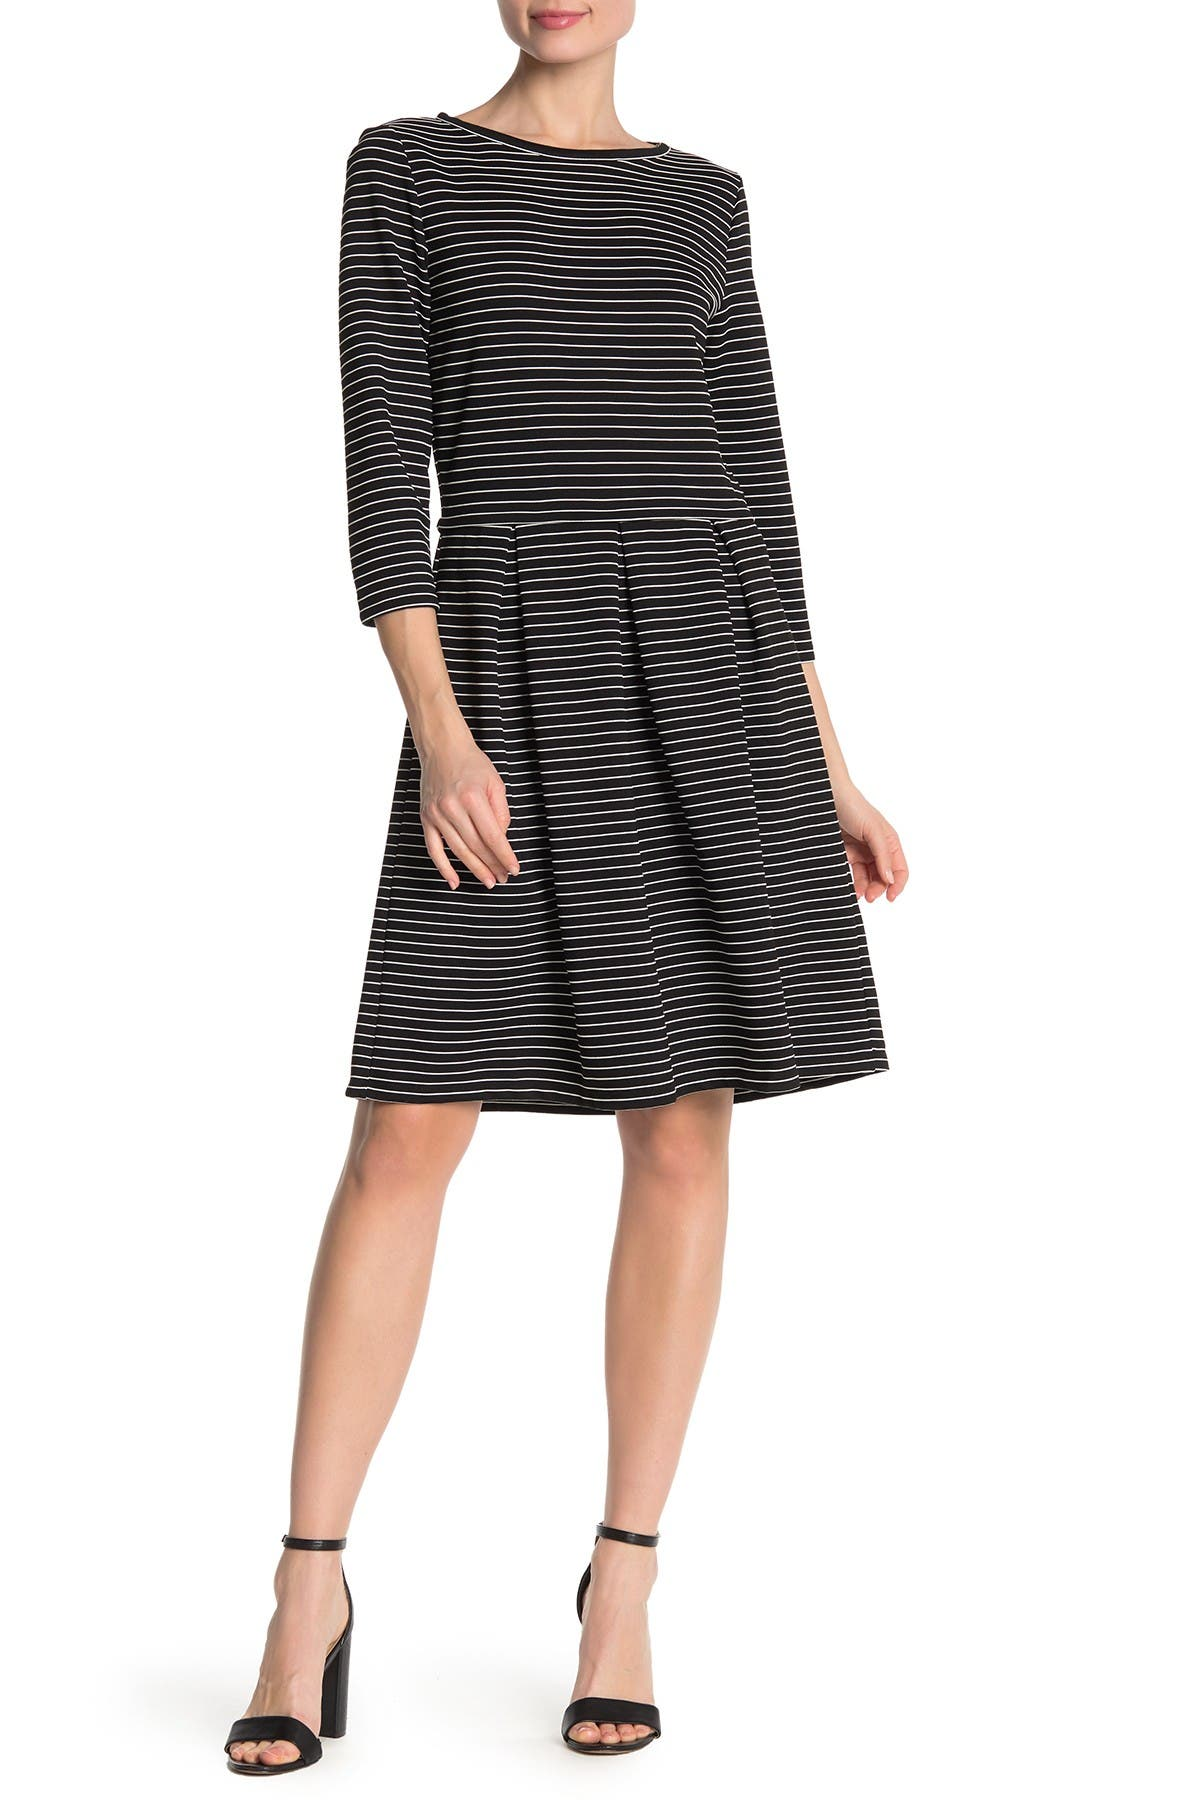 Image of Max Studio Striped 3/4 Sleeve Flared Dress